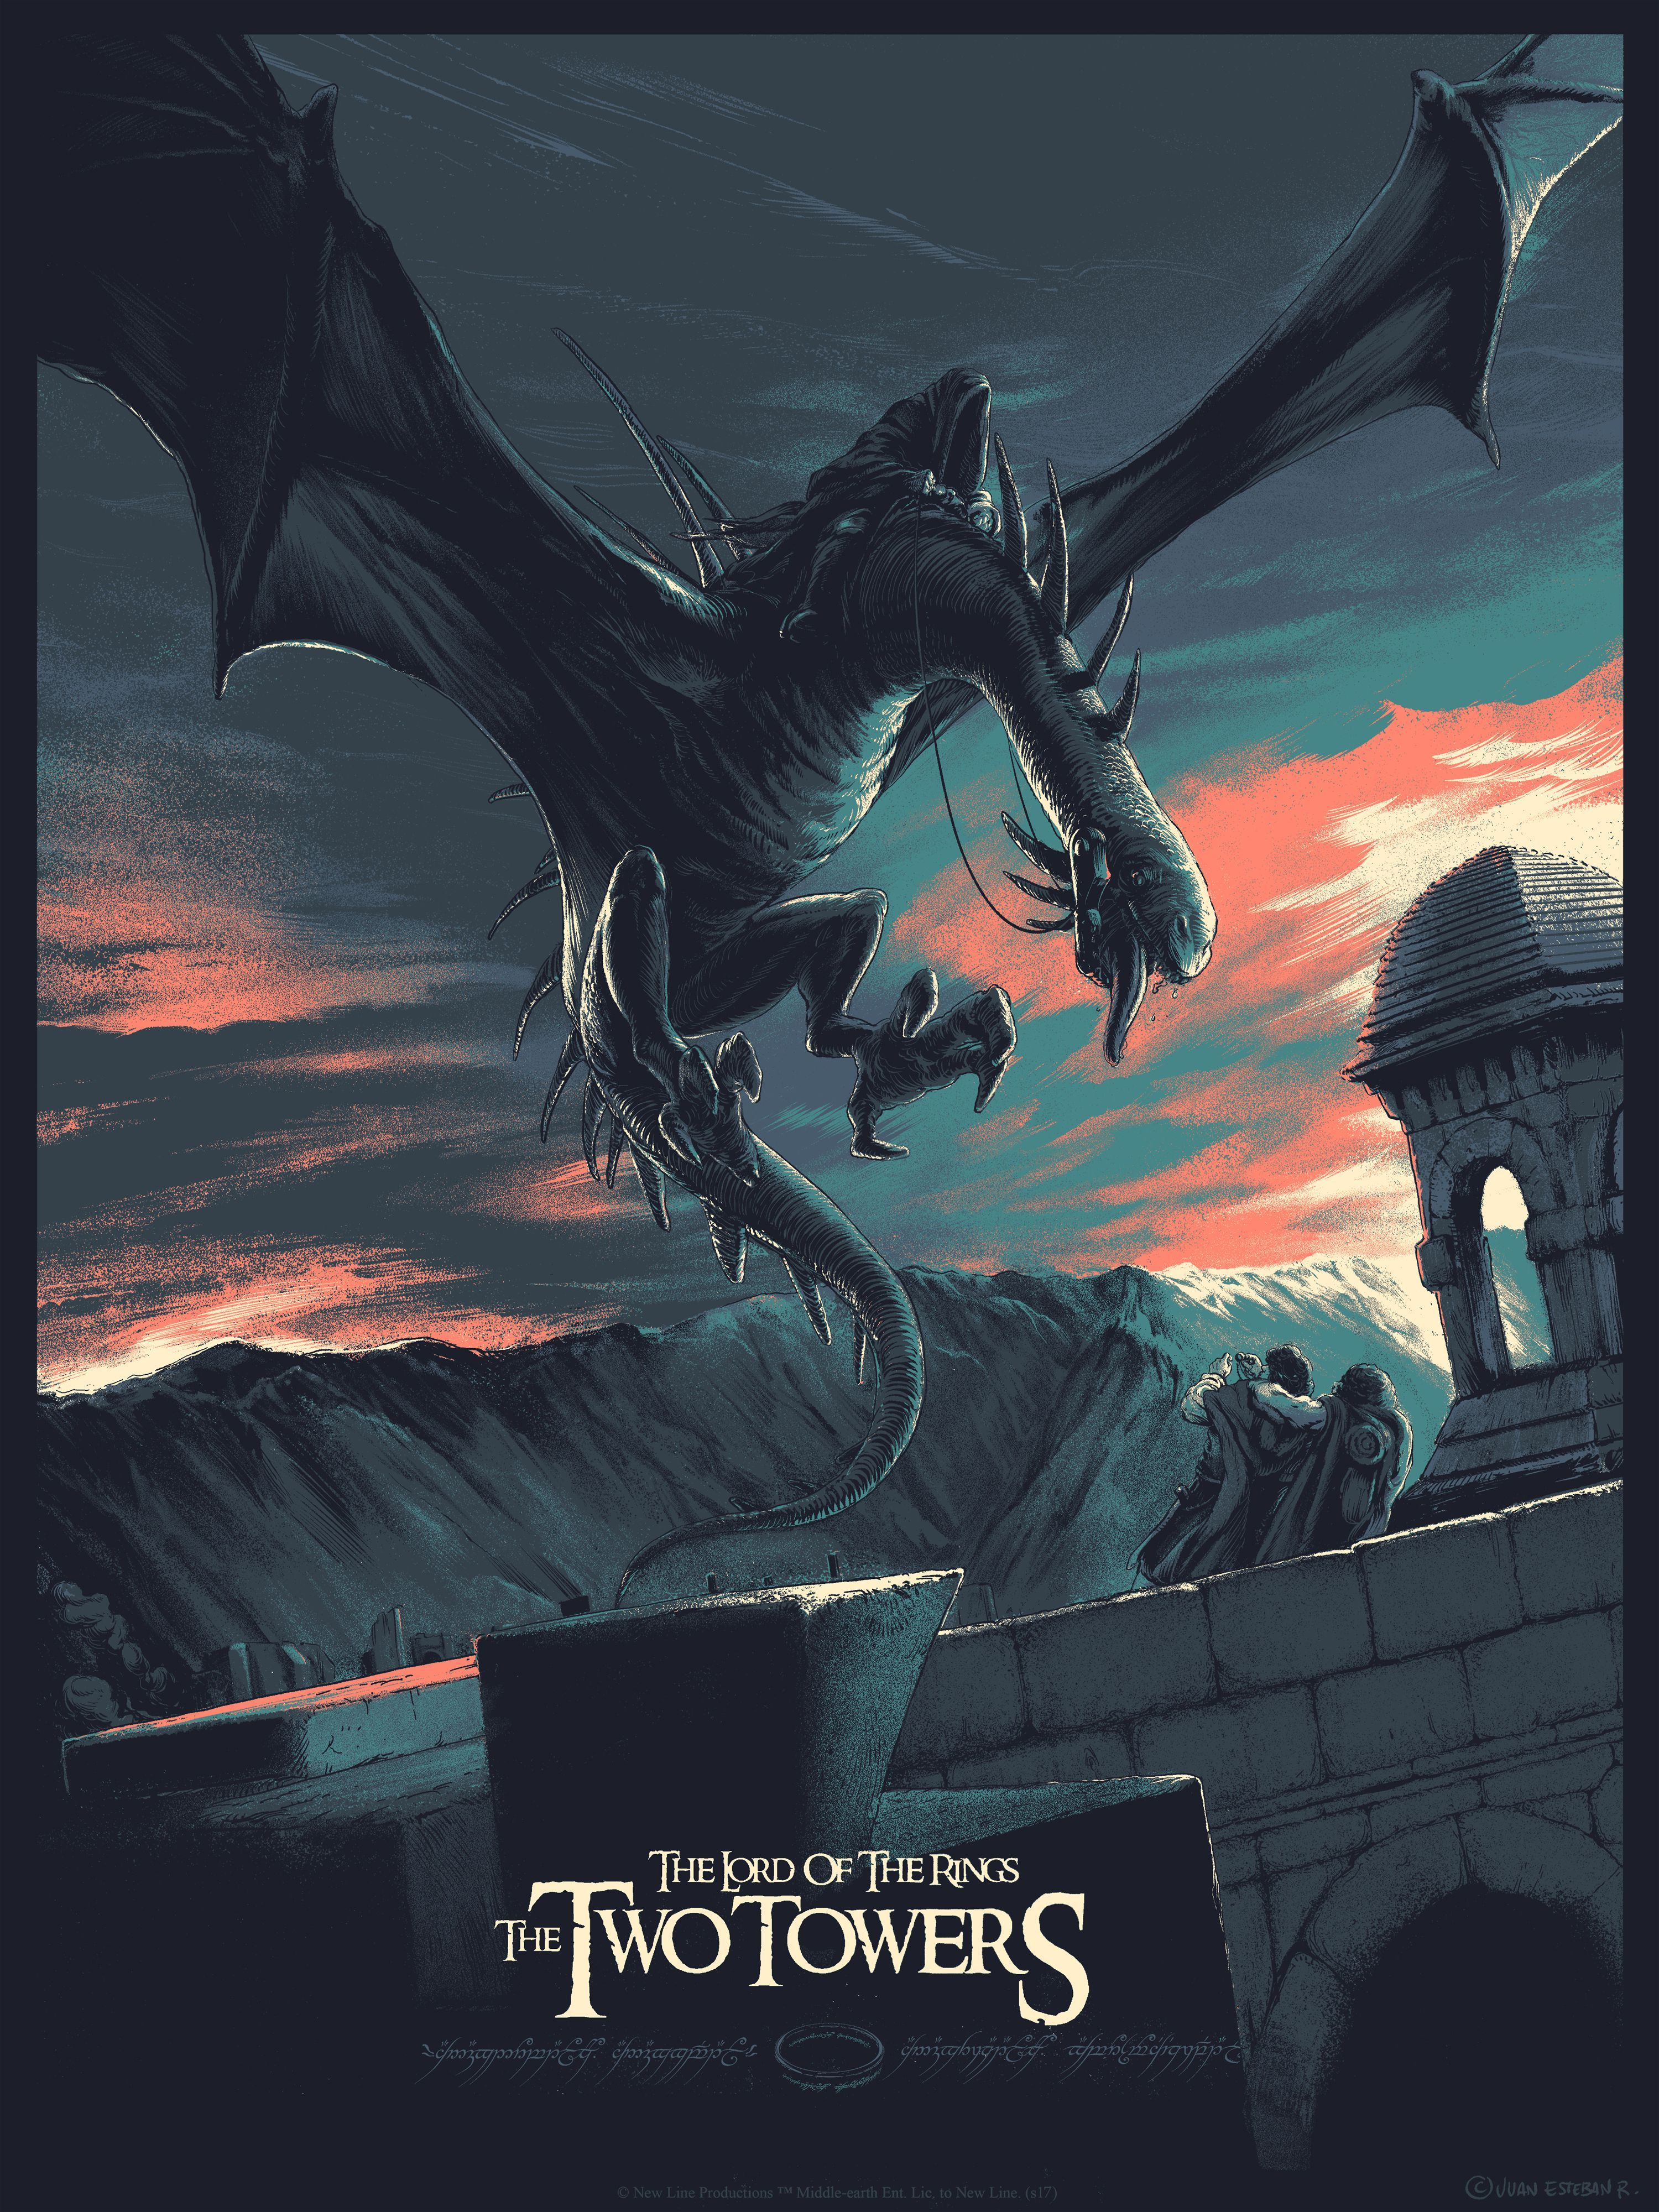 The Lord Of The Rings The Two Towers 2002 3000 4000 By Juan Esteban R In 2020 Lord Of The Rings The Two Towers Alternative Movie Posters